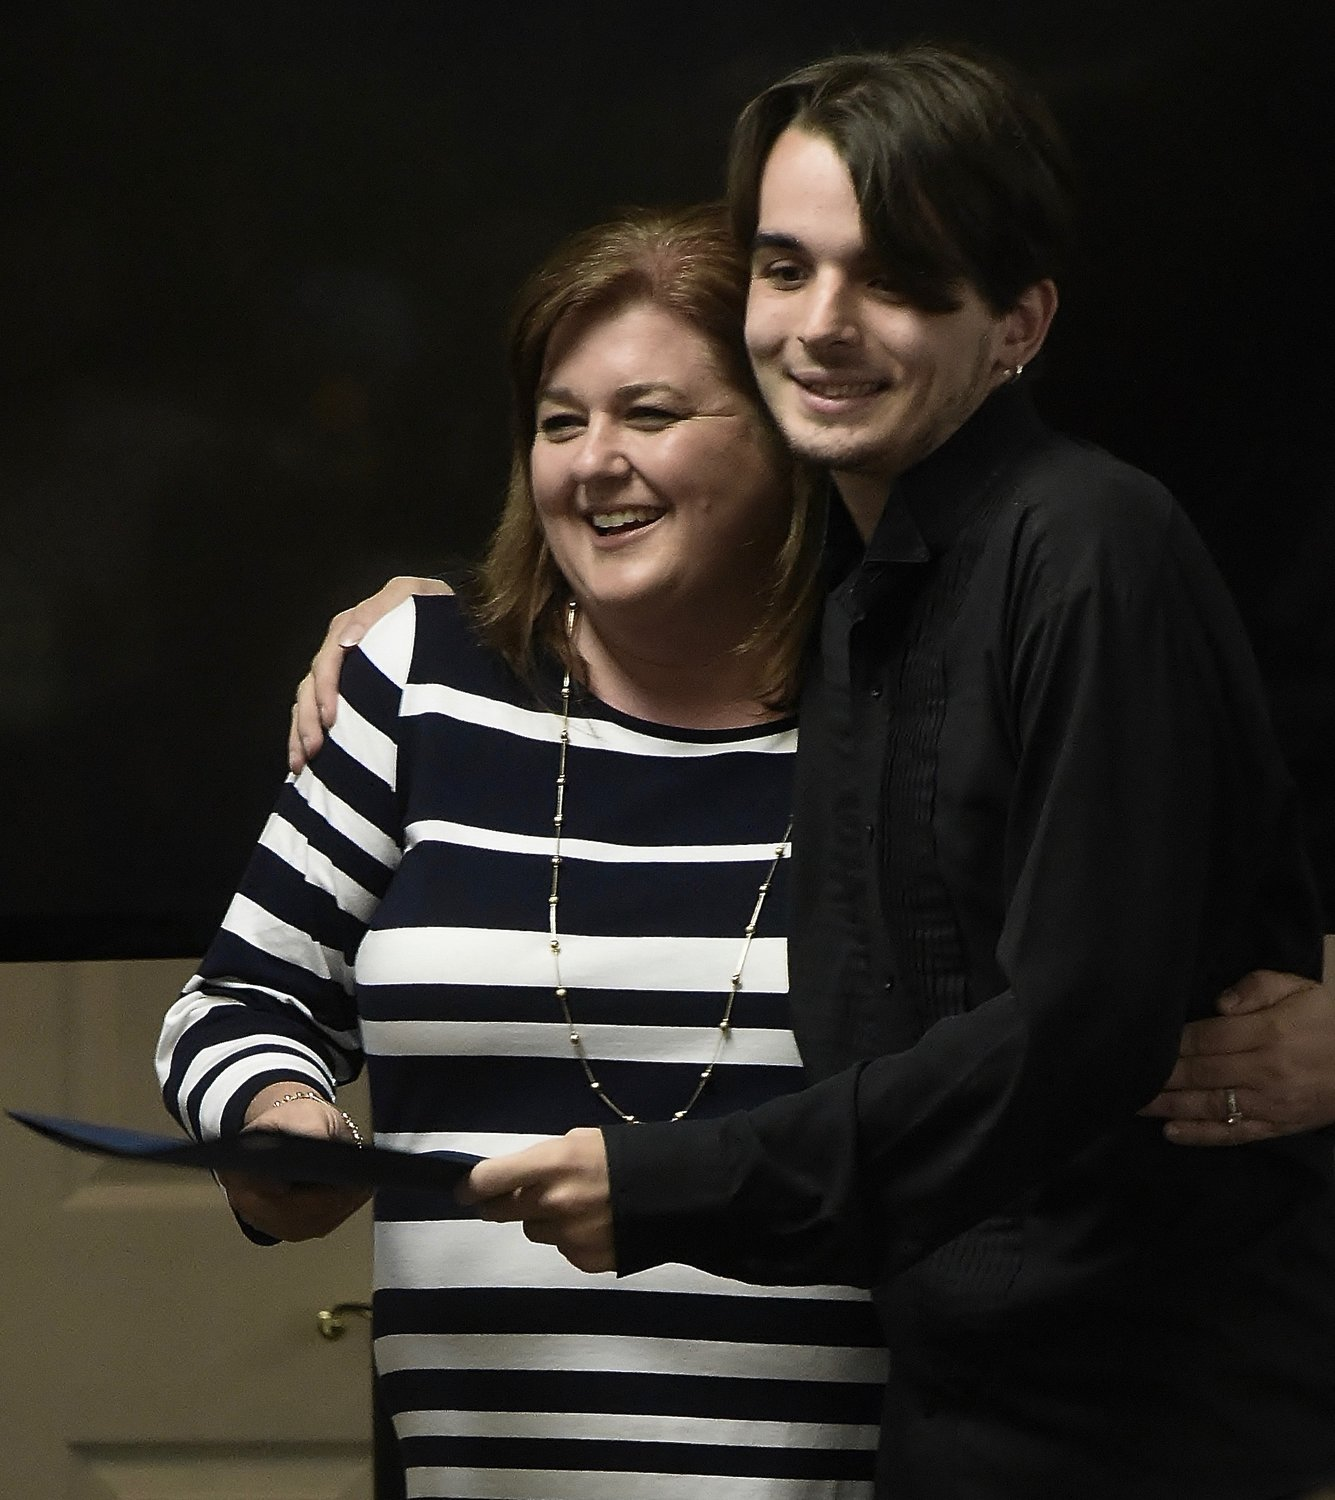 Project SEARCH instructor Jennifer Hyde gets a hug from intern River Southgate as she hands him his graduation certificate at the Project SEARCH graduation ceremony May 16 at Oakland Heights Baptist Church.